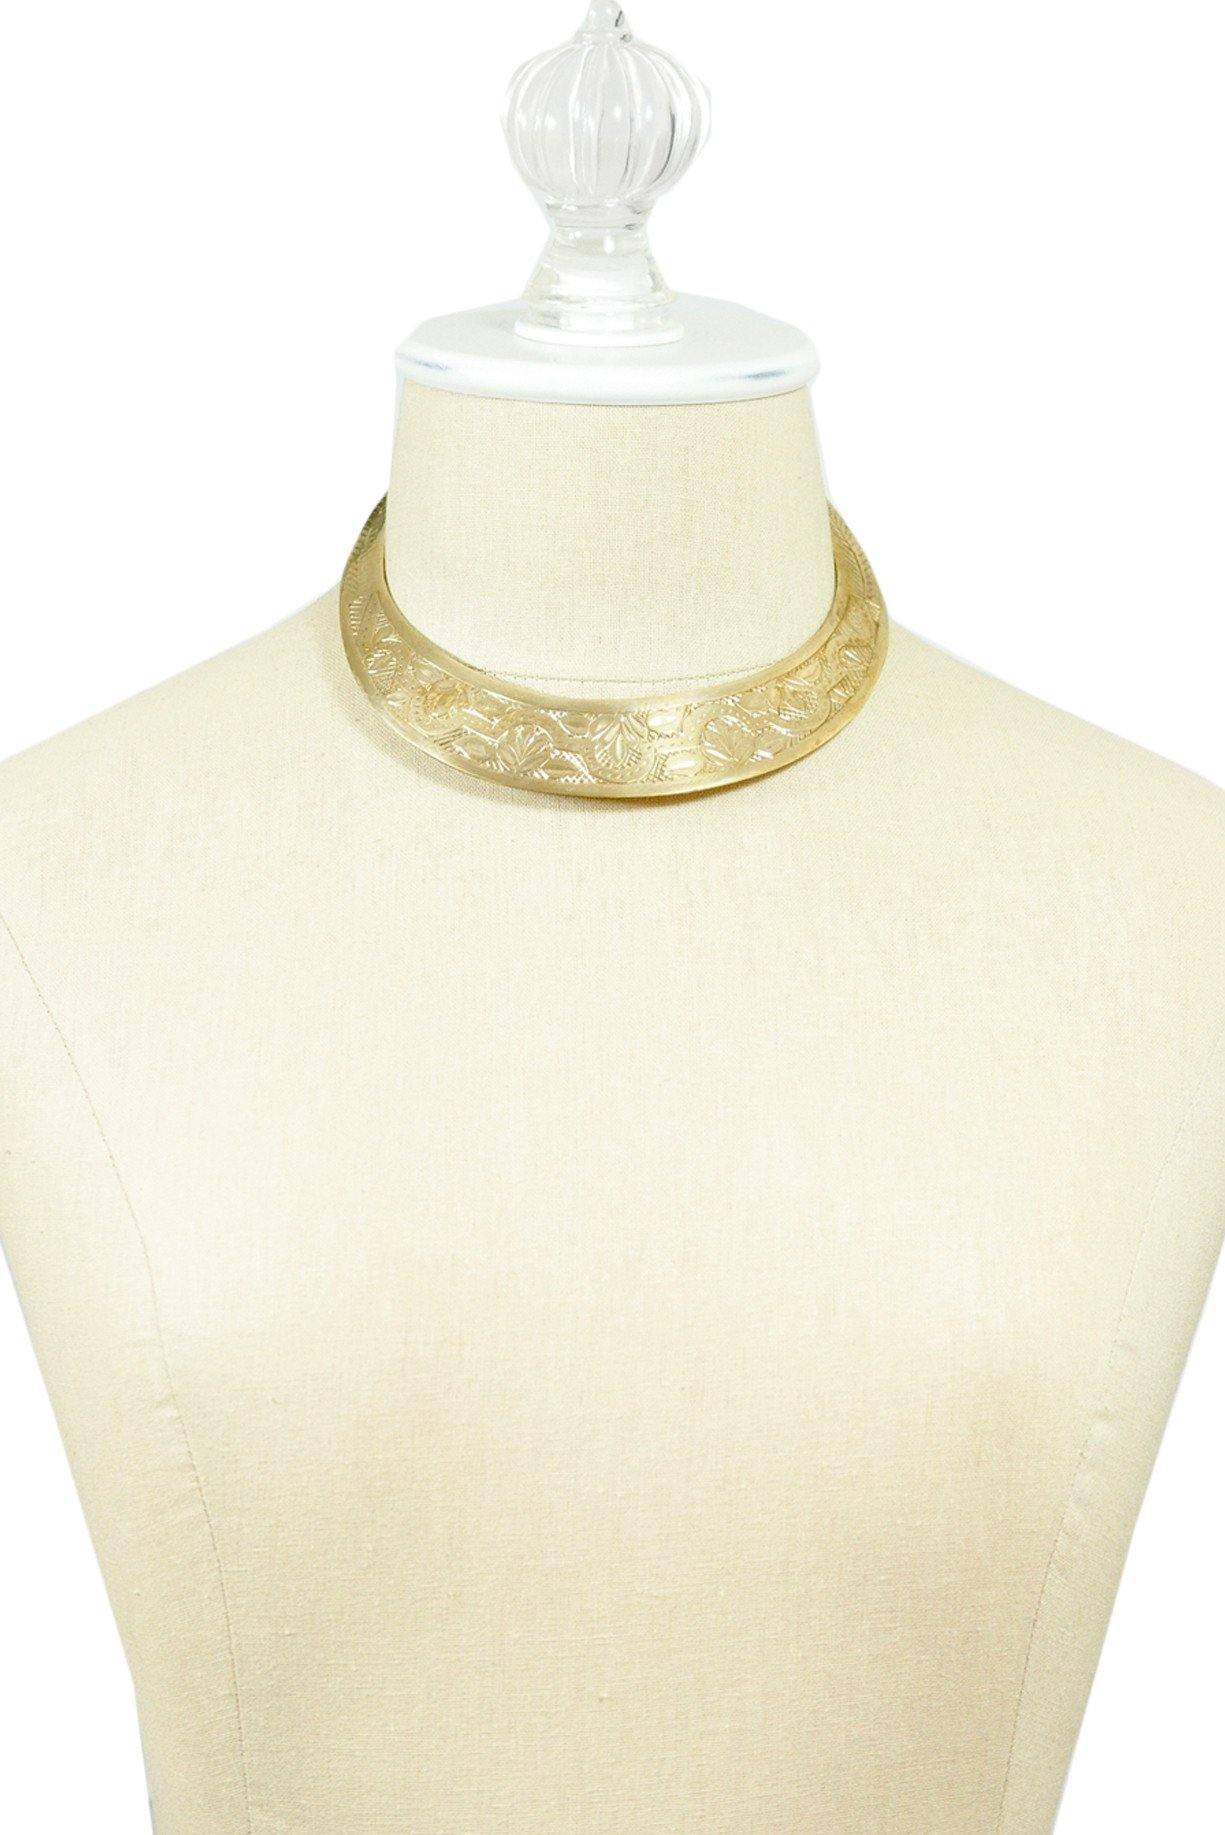 70's__Vintage__Etched Brass Choker Necklace